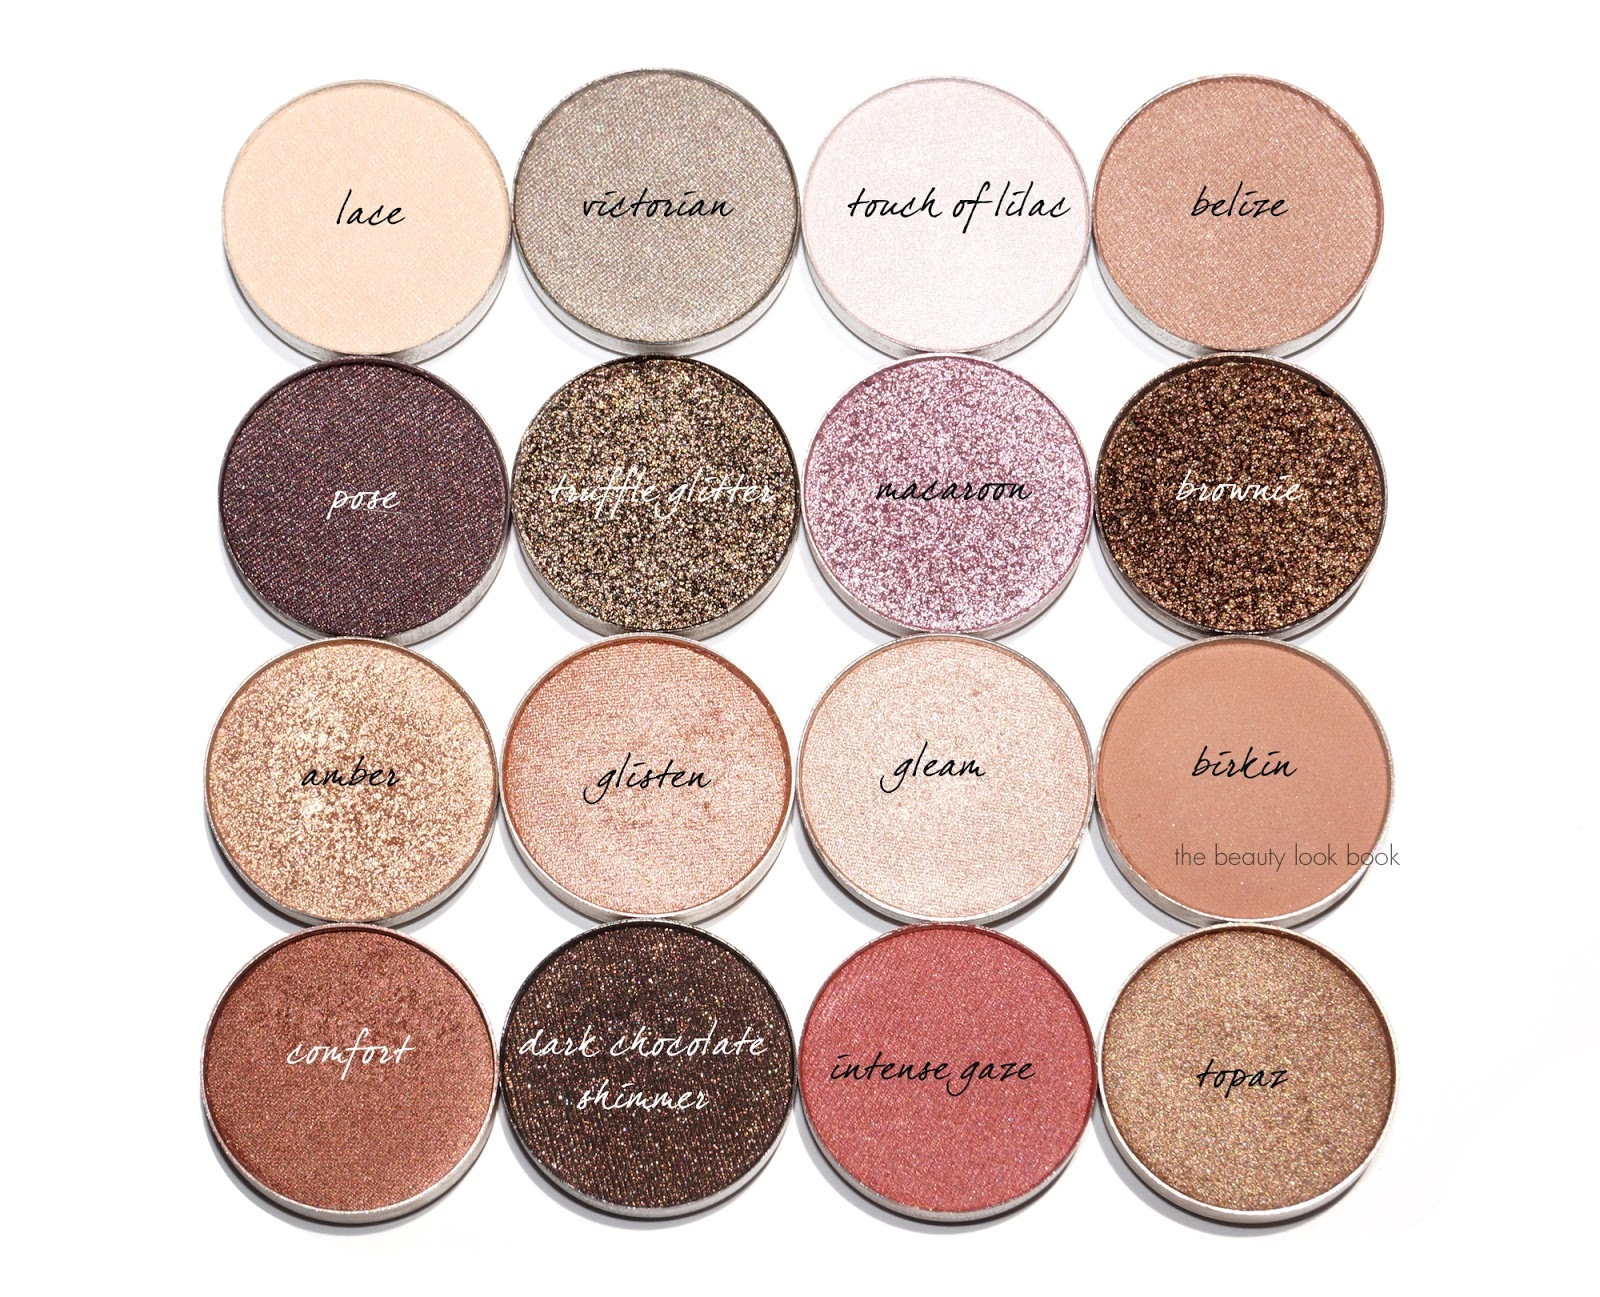 Anastasia%2BBeverly%2BHills%2BEyeshadows%2BLace%2BVictorian%2BTouch%2Bof%2BLilac%2BBelize%2BMacaroon%2BBrownie%2Bclose%2Bup